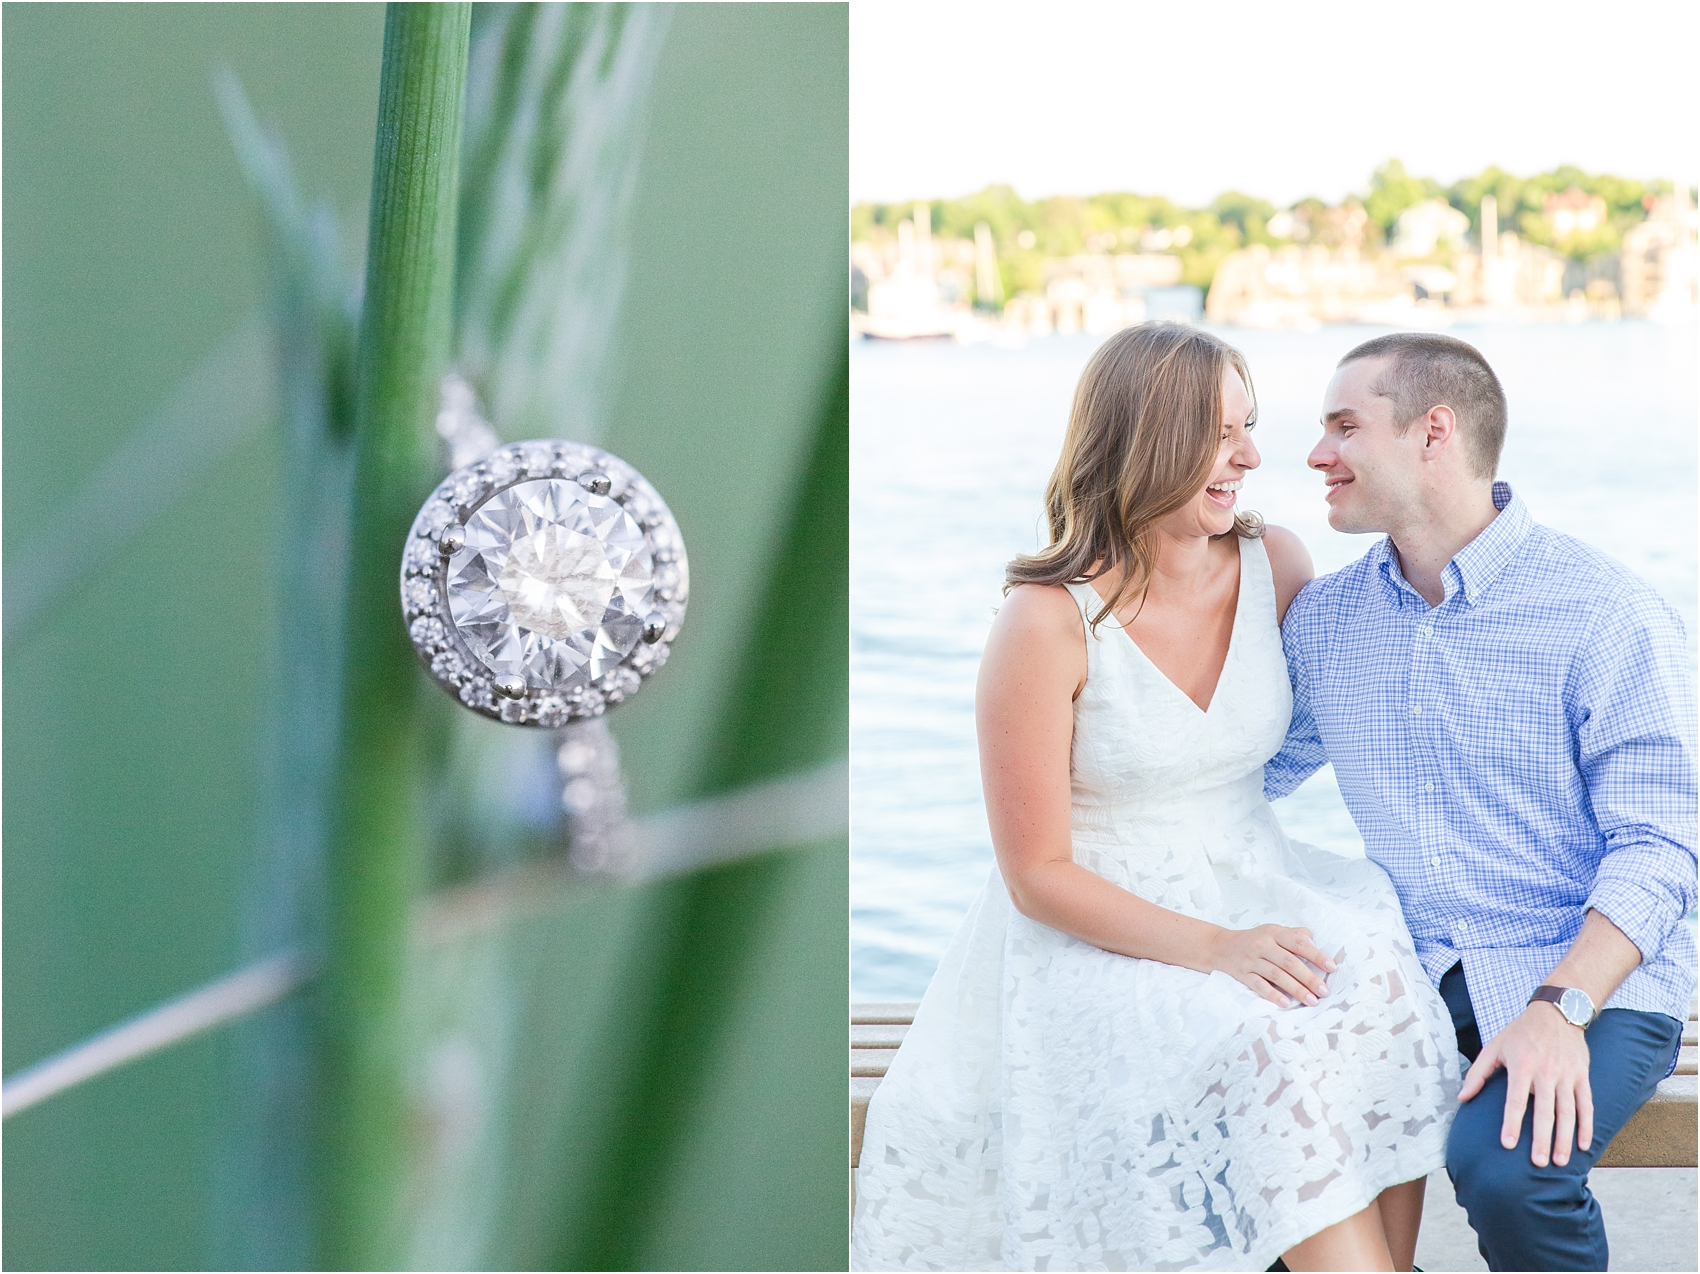 romantic-sunset-engagement-photos-in-downtown-charlevoix-mi-by-courtney-carolyn-photography_0004.jpg